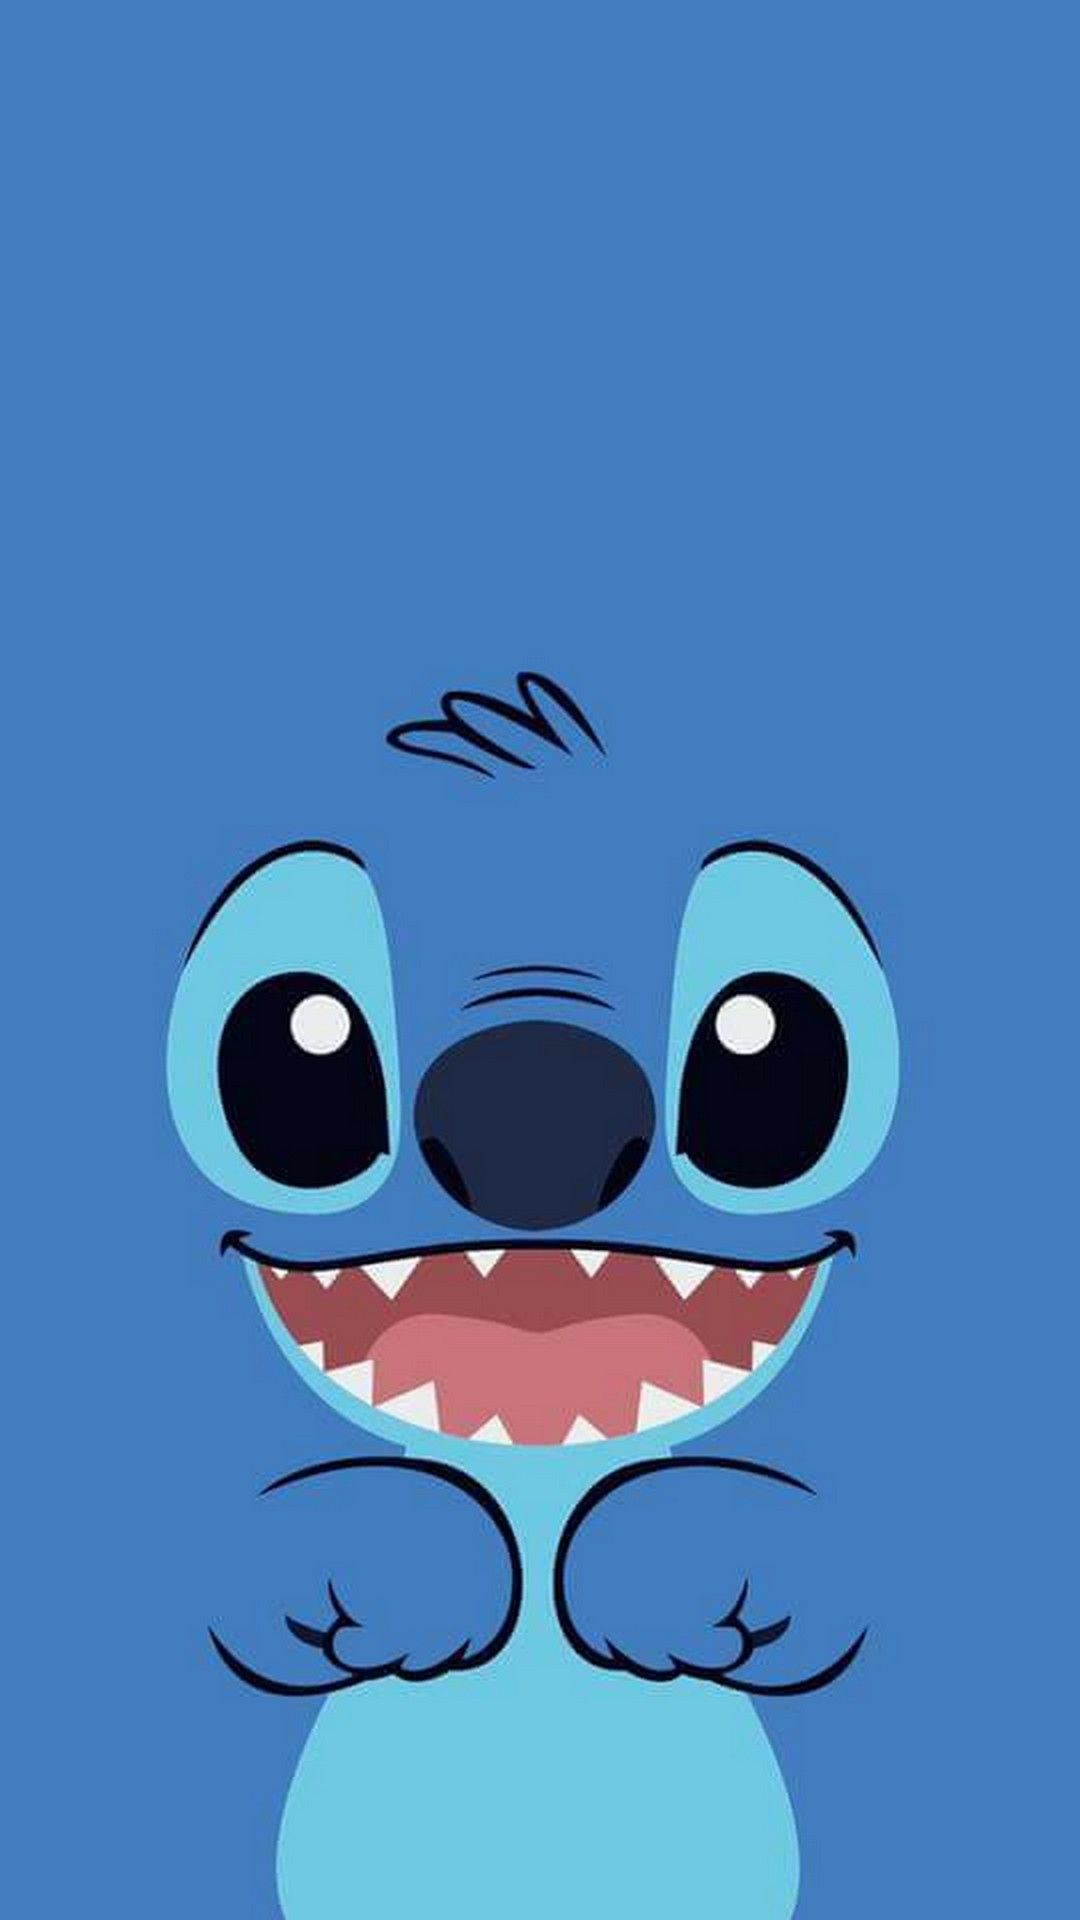 Stitch Disney Wallpaper For Mobile Android Best HD